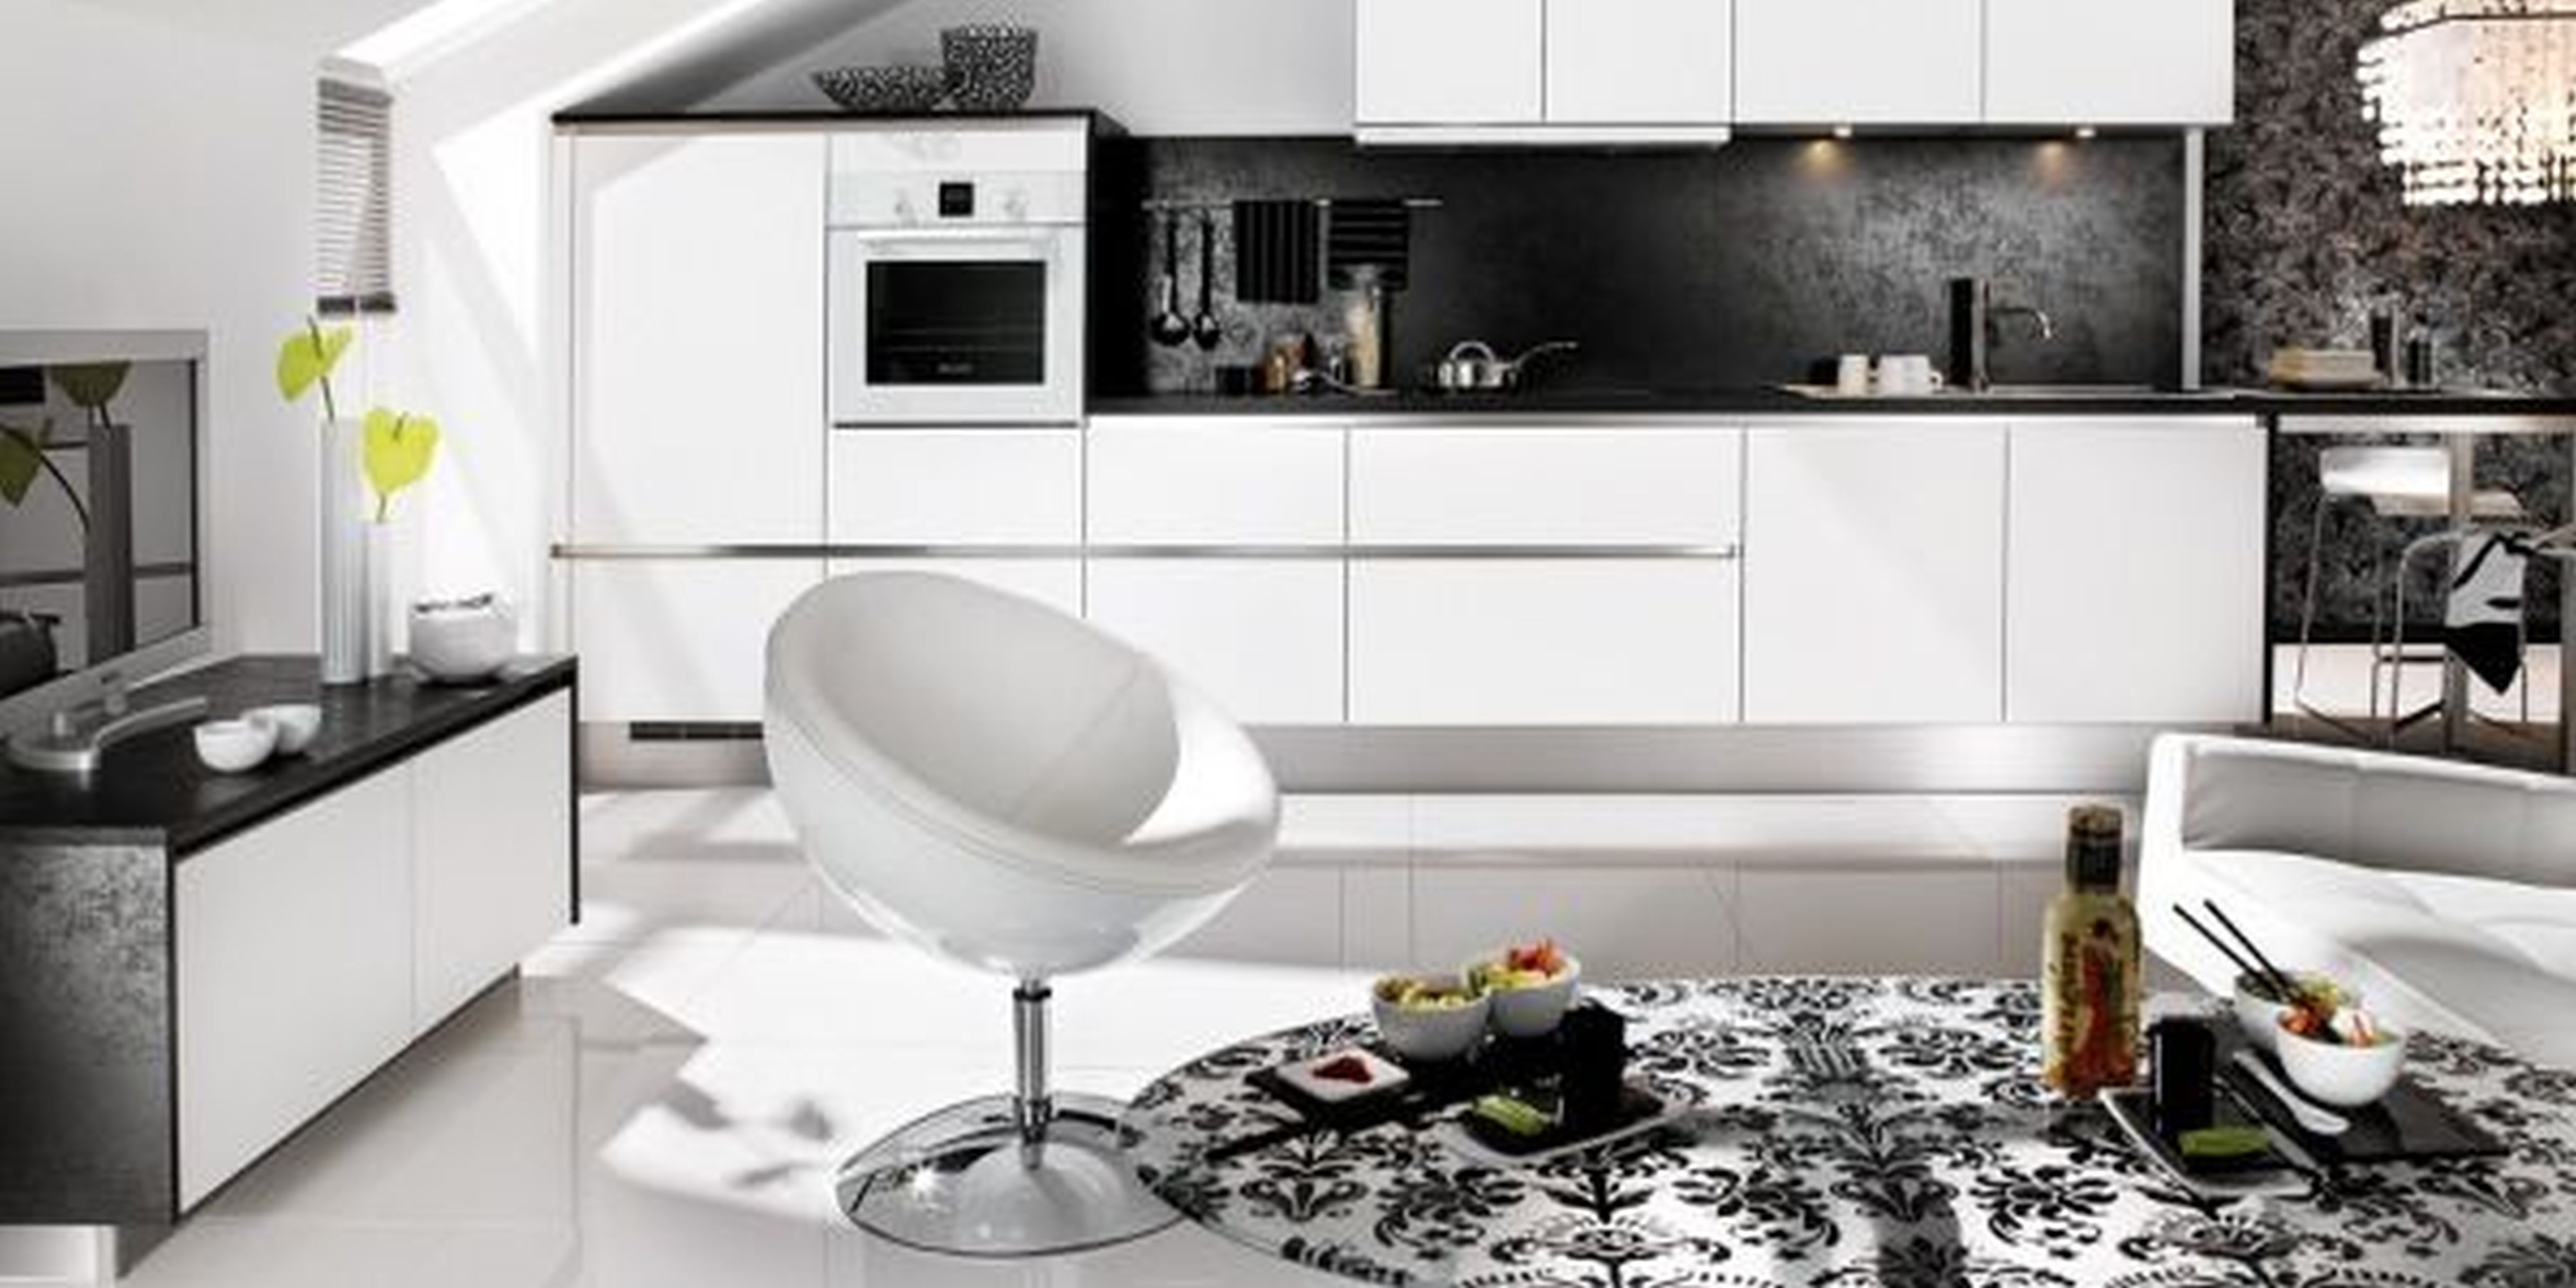 Free Download Besf Of Ideas Modern Kitchen Flooring For Inspiring Design Ideas In 5000x2500 For Your Desktop Mobile Tablet Explore 41 Modern Kitchen Wallpaper Ideas Discount Wallpaper Country Kitchen